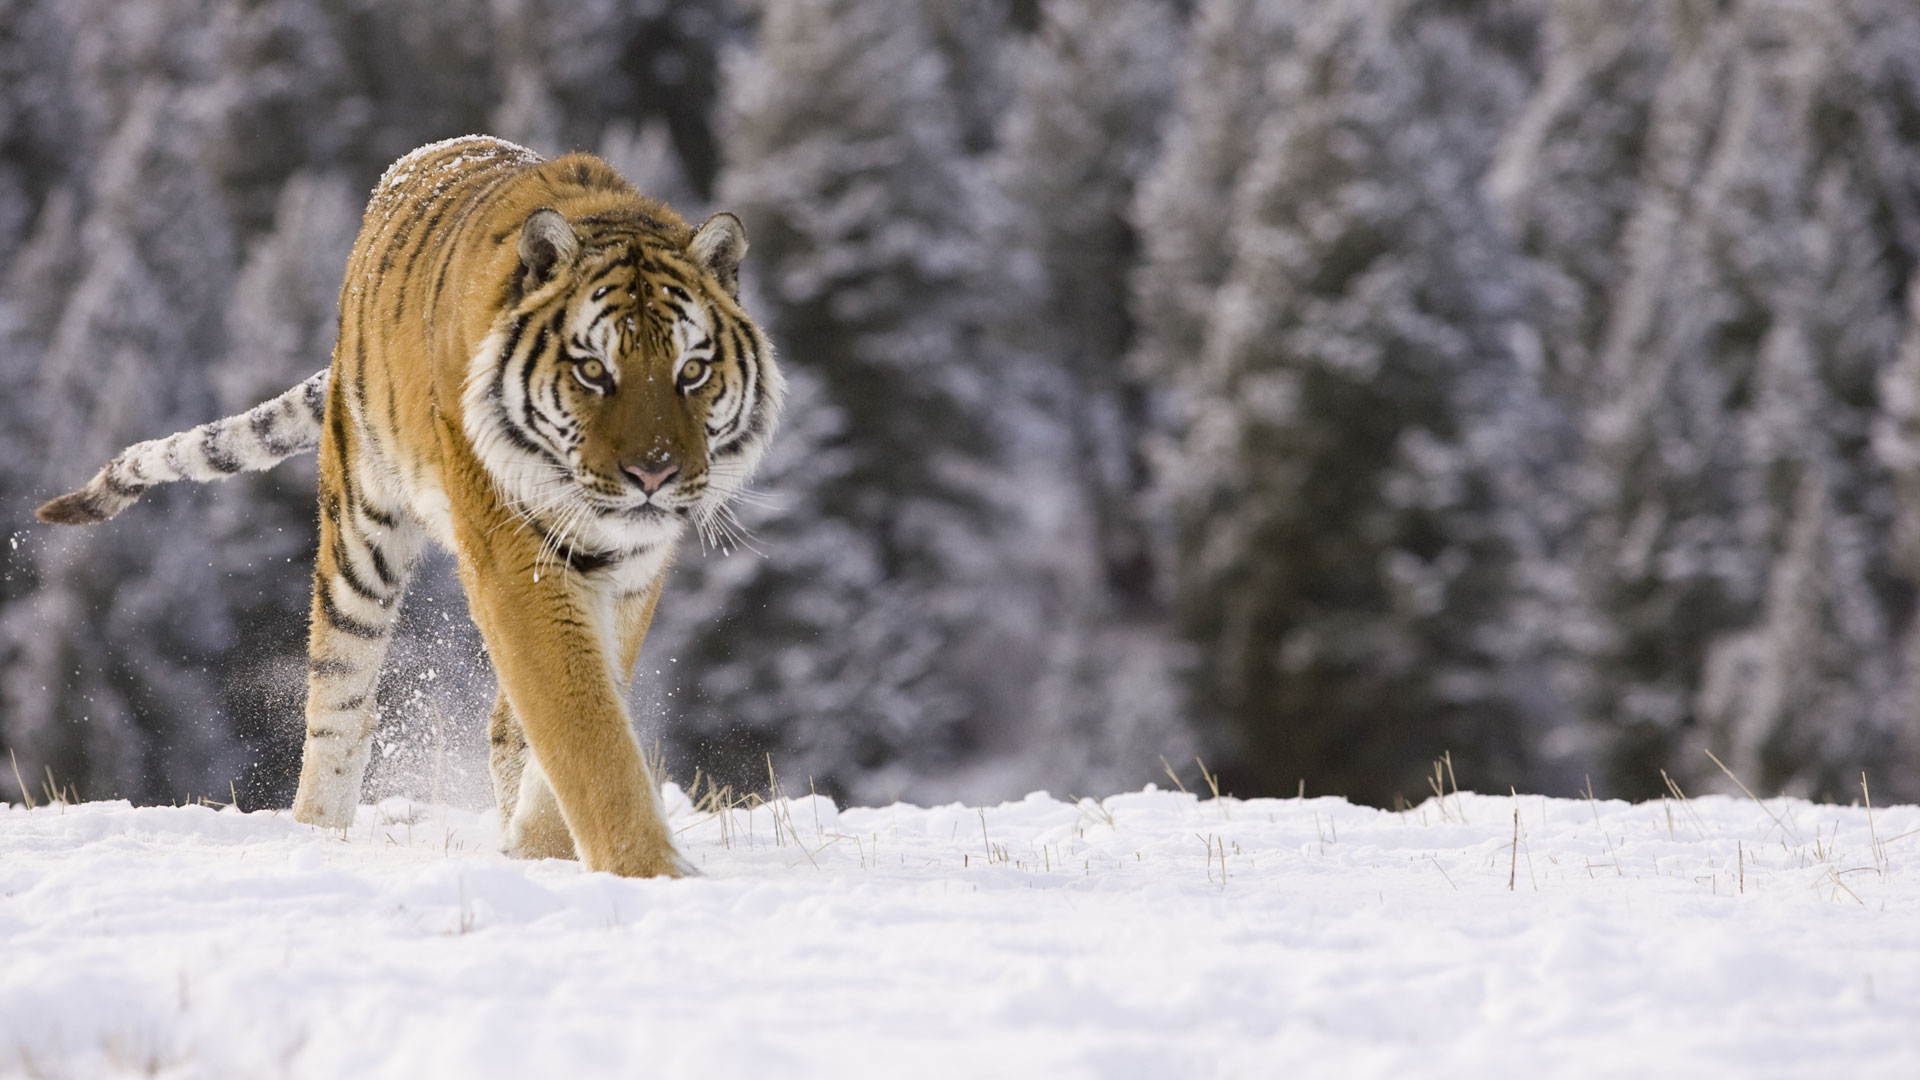 siberian tiger (amur tiger) - facts for kids, pictures, habitat